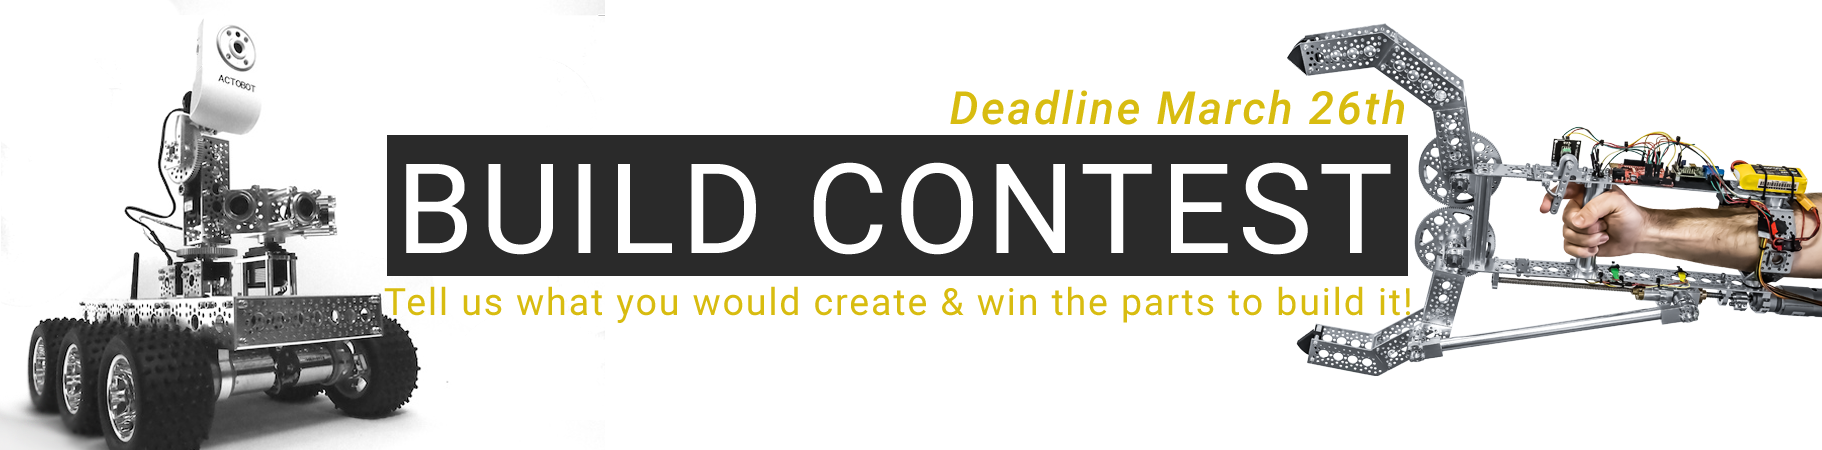 Click image for larger version  Name:Build-Contest_2.png Views:19 Size:326.8 KB ID:2257791